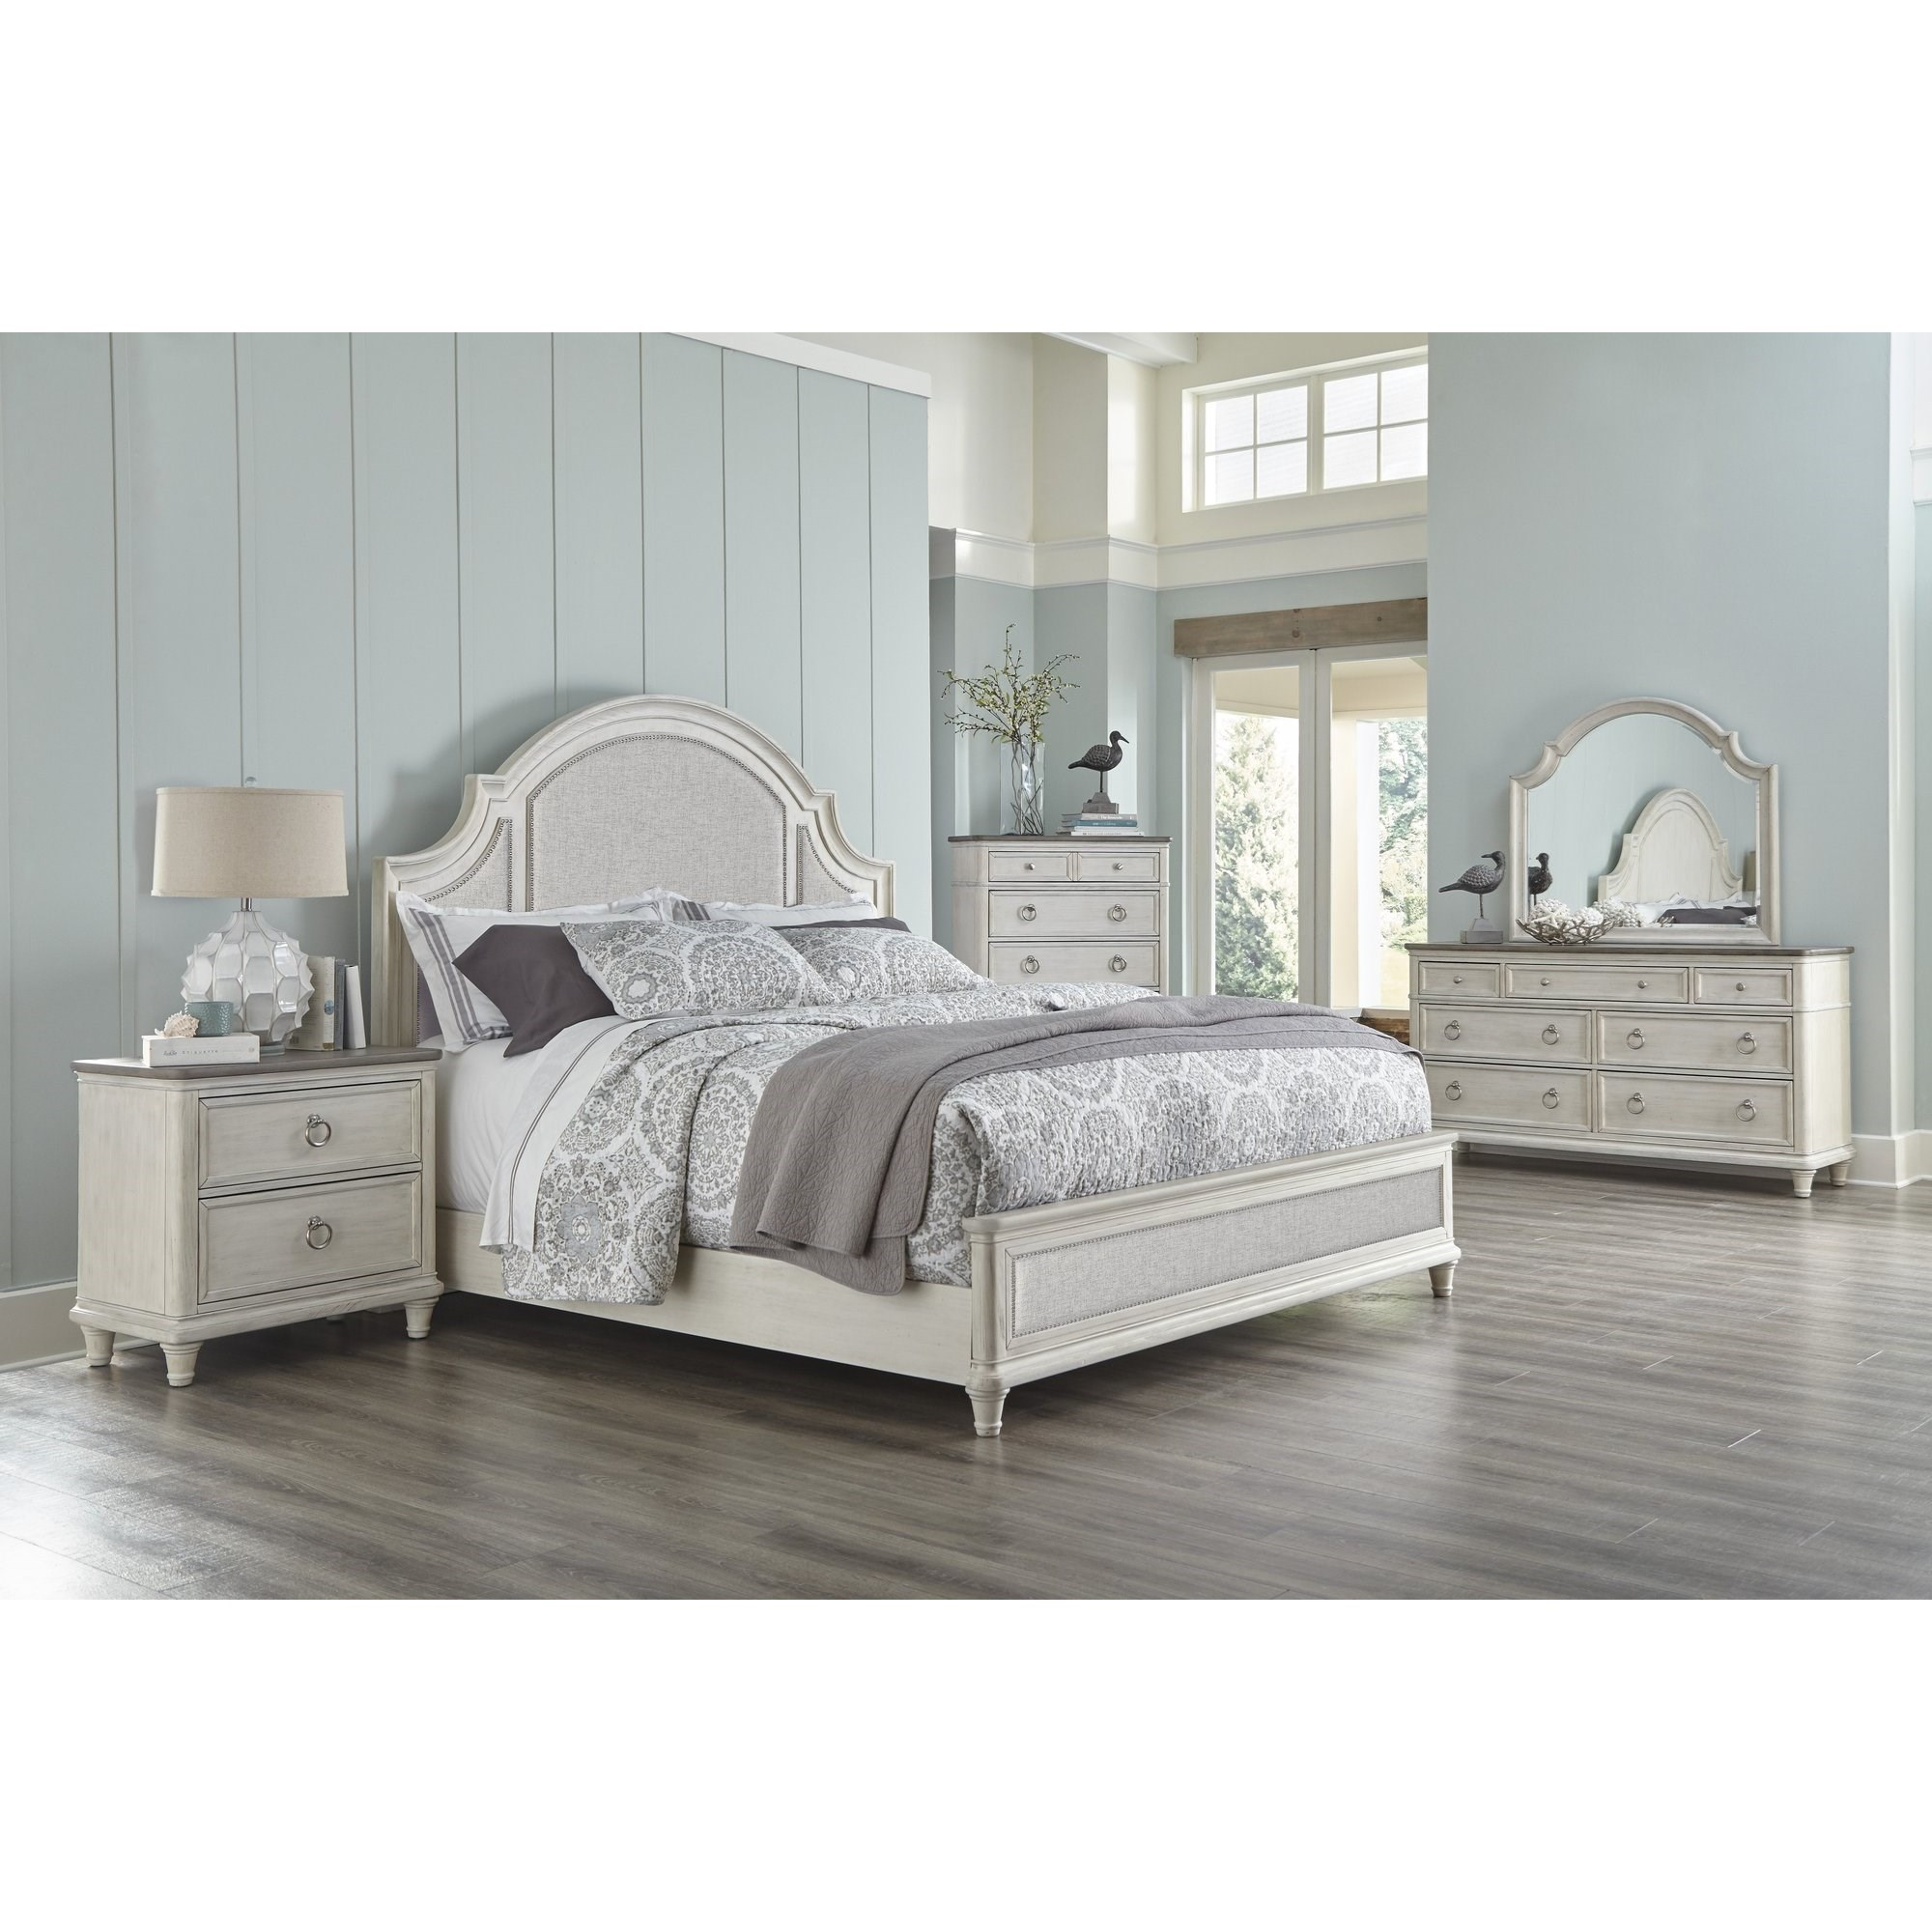 Sonoma Queen Bedroom Group by Panama Jack by Palmetto Home at Baer's Furniture